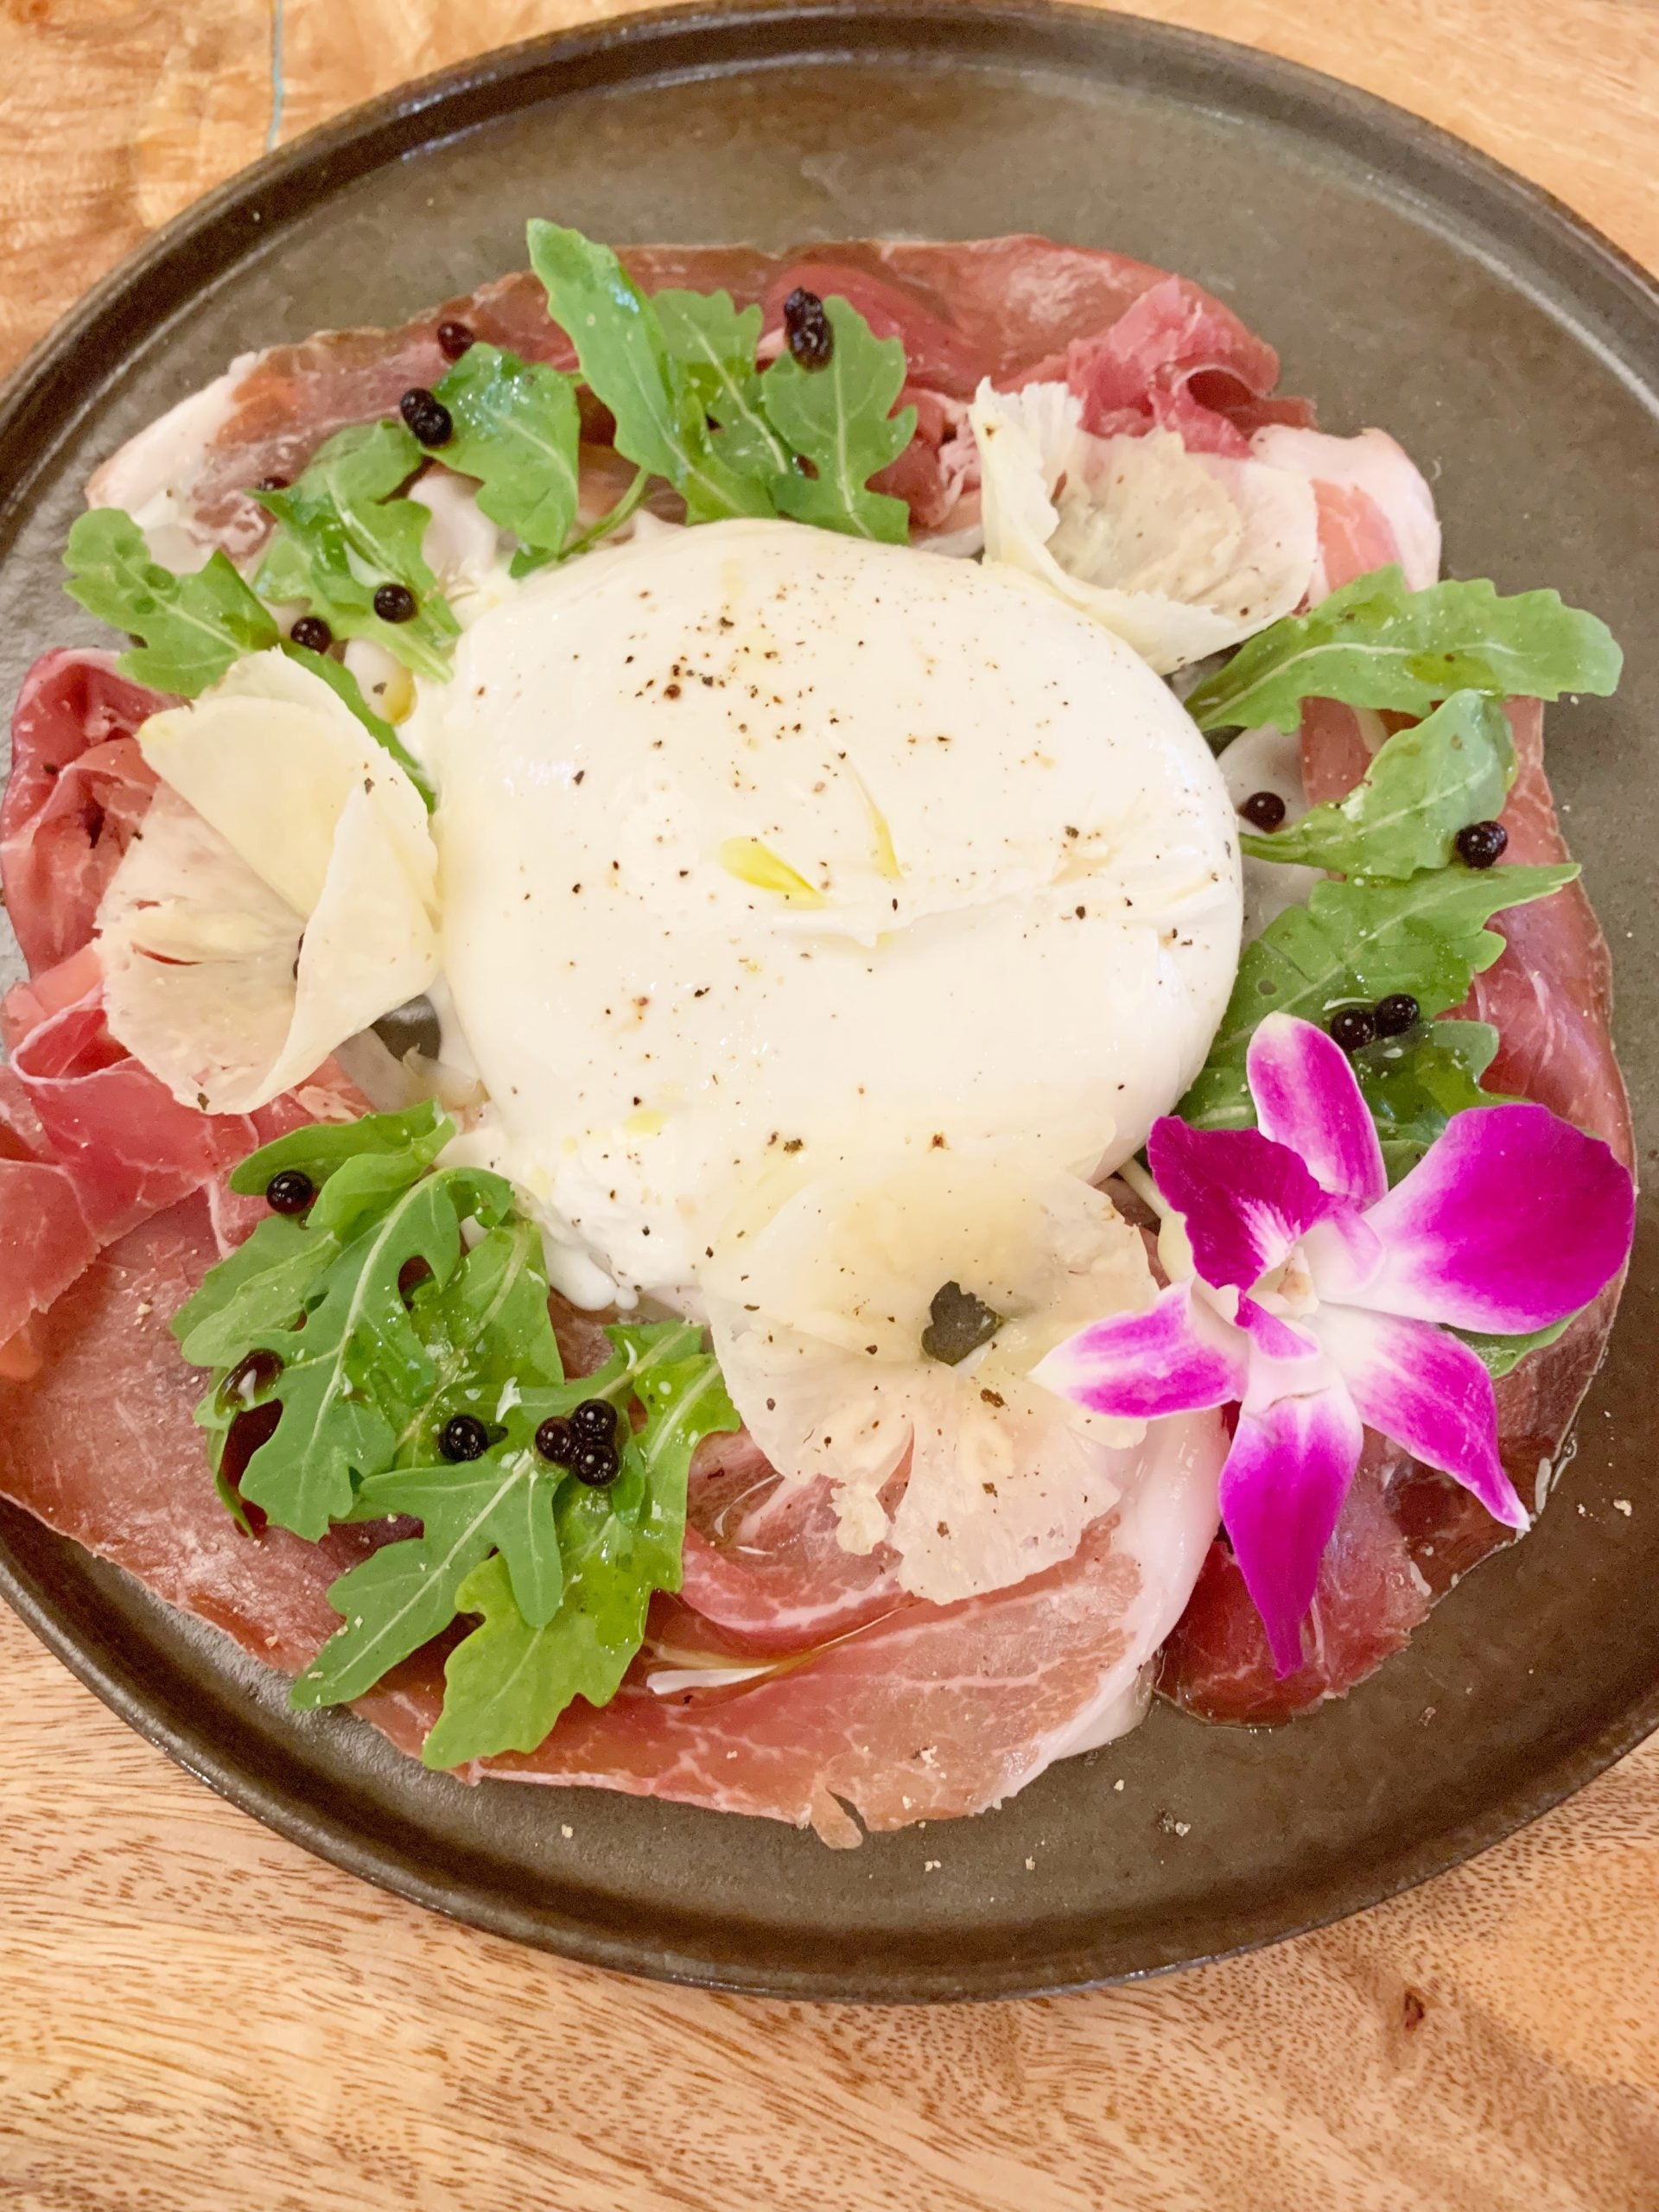 Island Vintage Wine Bar - A full guide to drinking and dining at Royal Hawaiian Center's Island Vintage Wine Bar in Waikiki! - Royal Hawaiian Center Restaurants - Wine Bar Oahu - Island Vintage Hawaii - Oahu Restaurants